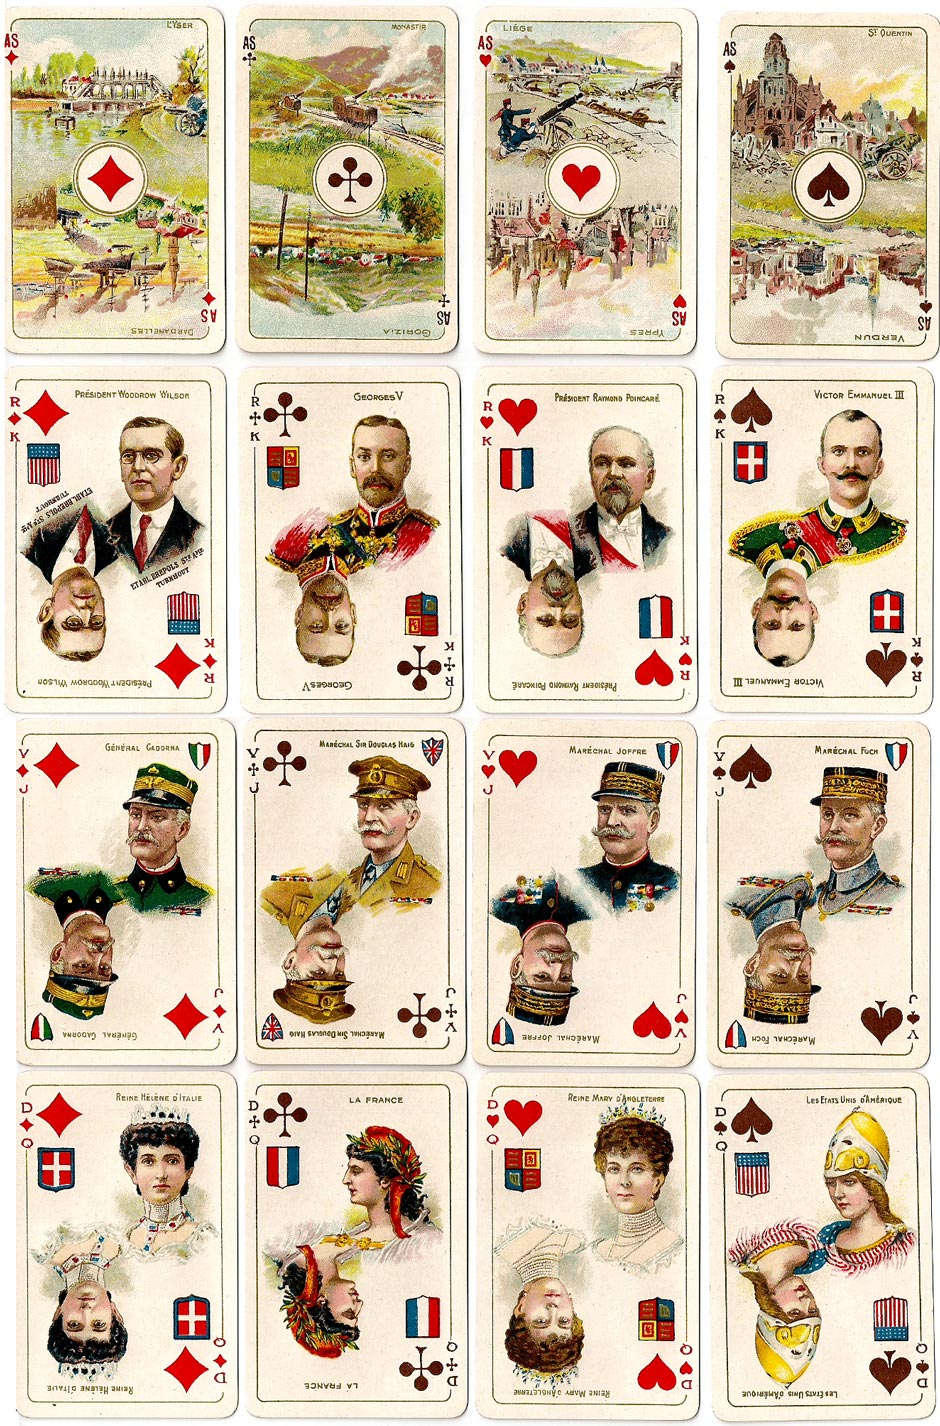 World War I commemorative playing cards published by Brepols, Turnhout, 1919